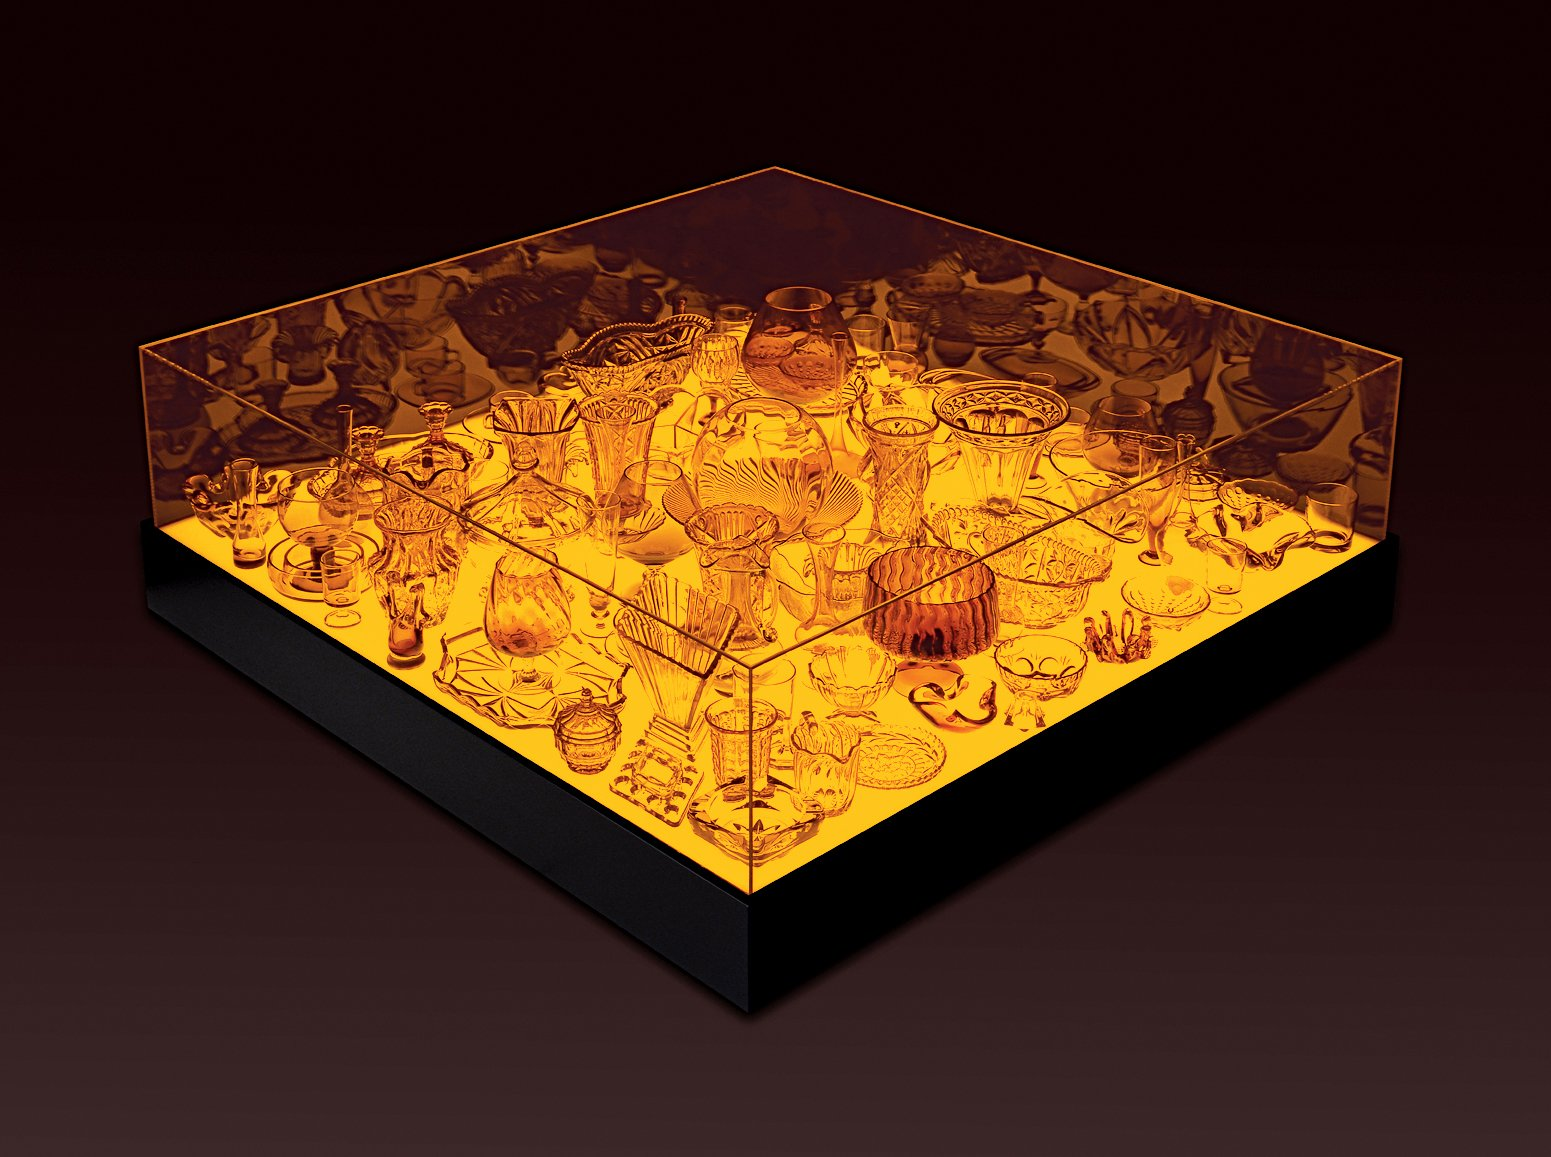 The 2006 Aladdin table, which houses an assemblage of glass pieces within an amber light box. Design Junkie - Photo 5 of 13